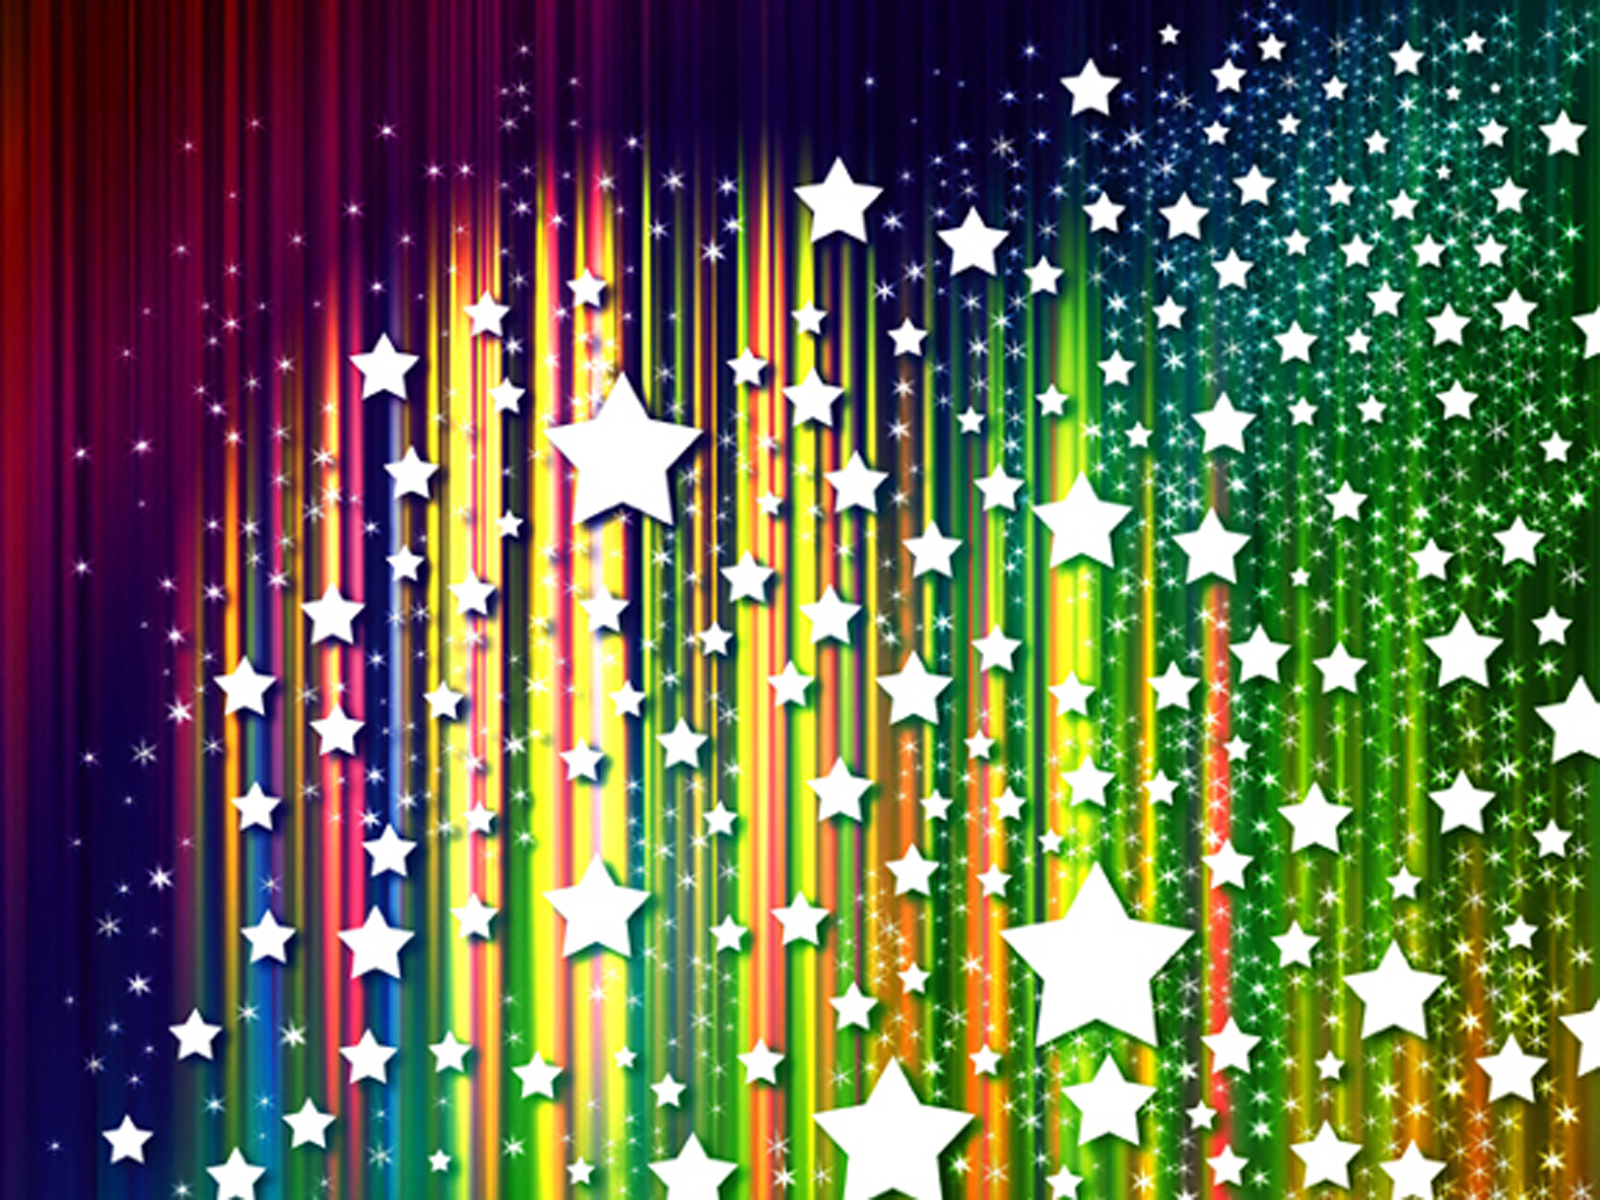 Spot light stars PPT Backgrounds